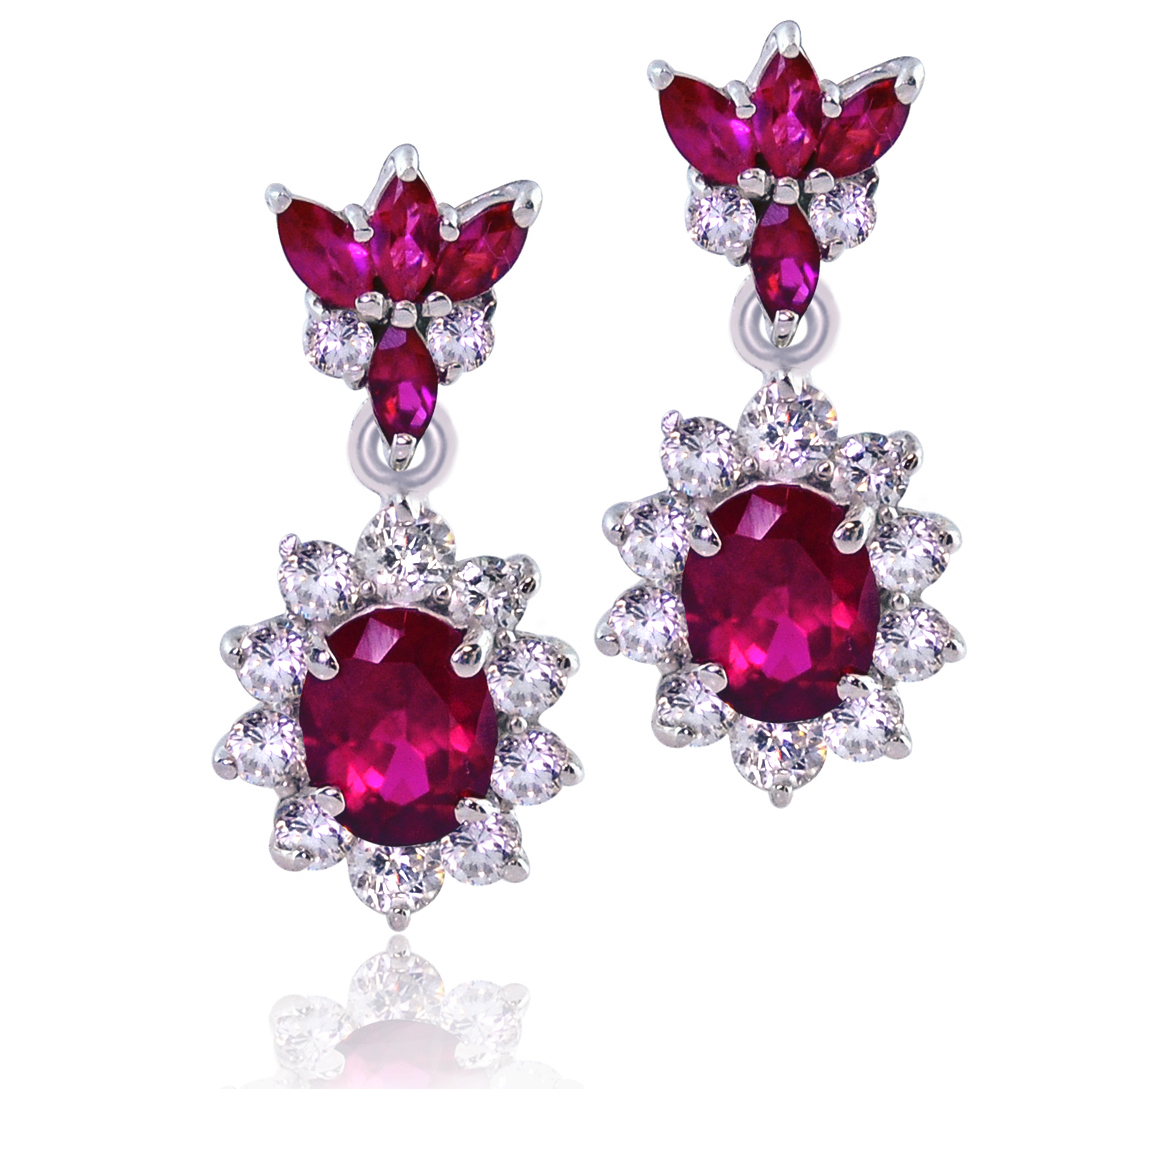 http://1.bp.blogspot.com/_Nk6sFkRFyJQ/TUNuXmxRr7I/AAAAAAAAAio/9BTF5irtyLo/s1600/sterling-silver-ruby-red-cz-earrings-p1362.jpg